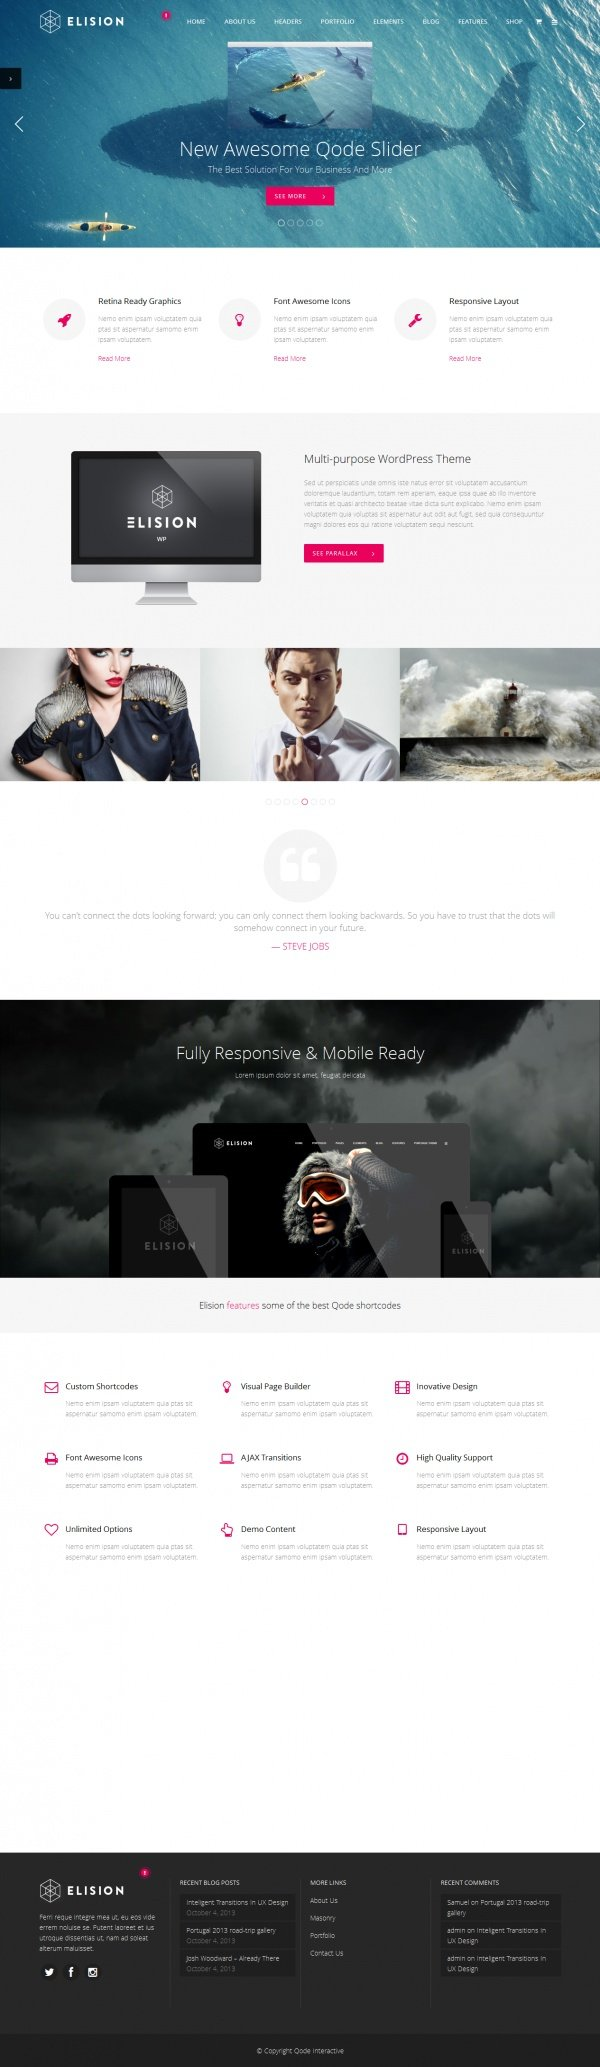 Elision Best Creative WordPress Themes June